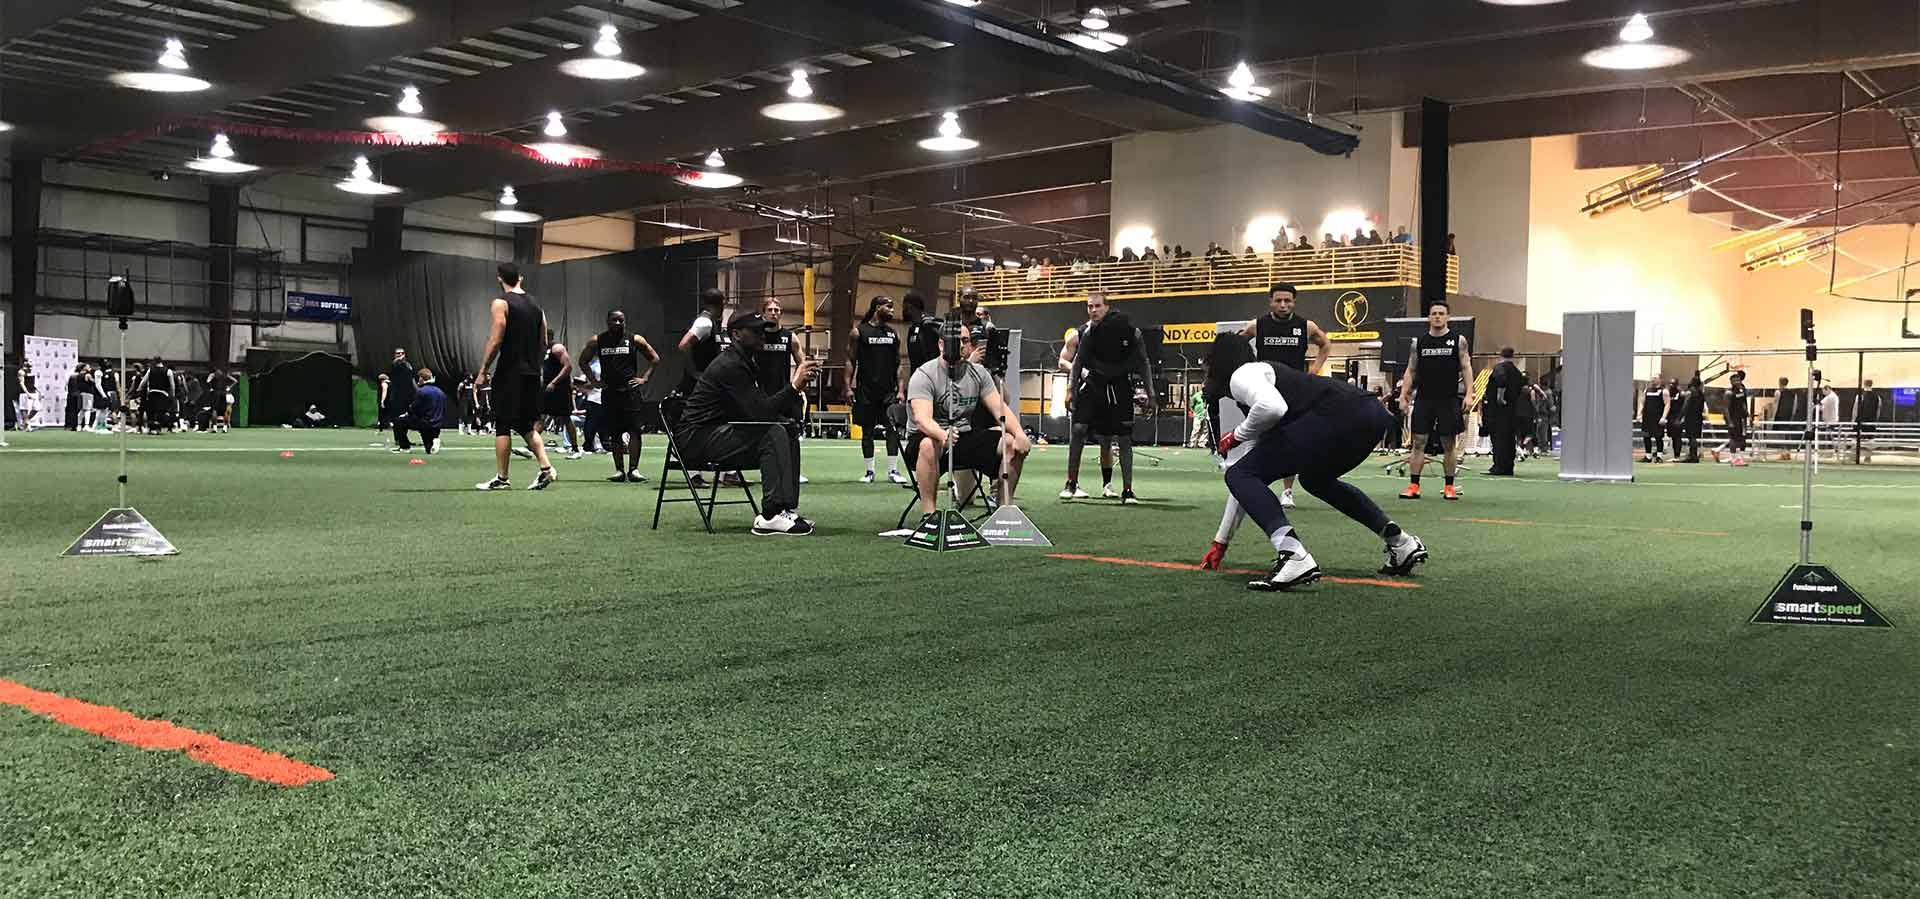 2019 National Scouting Combine RB Position Drills